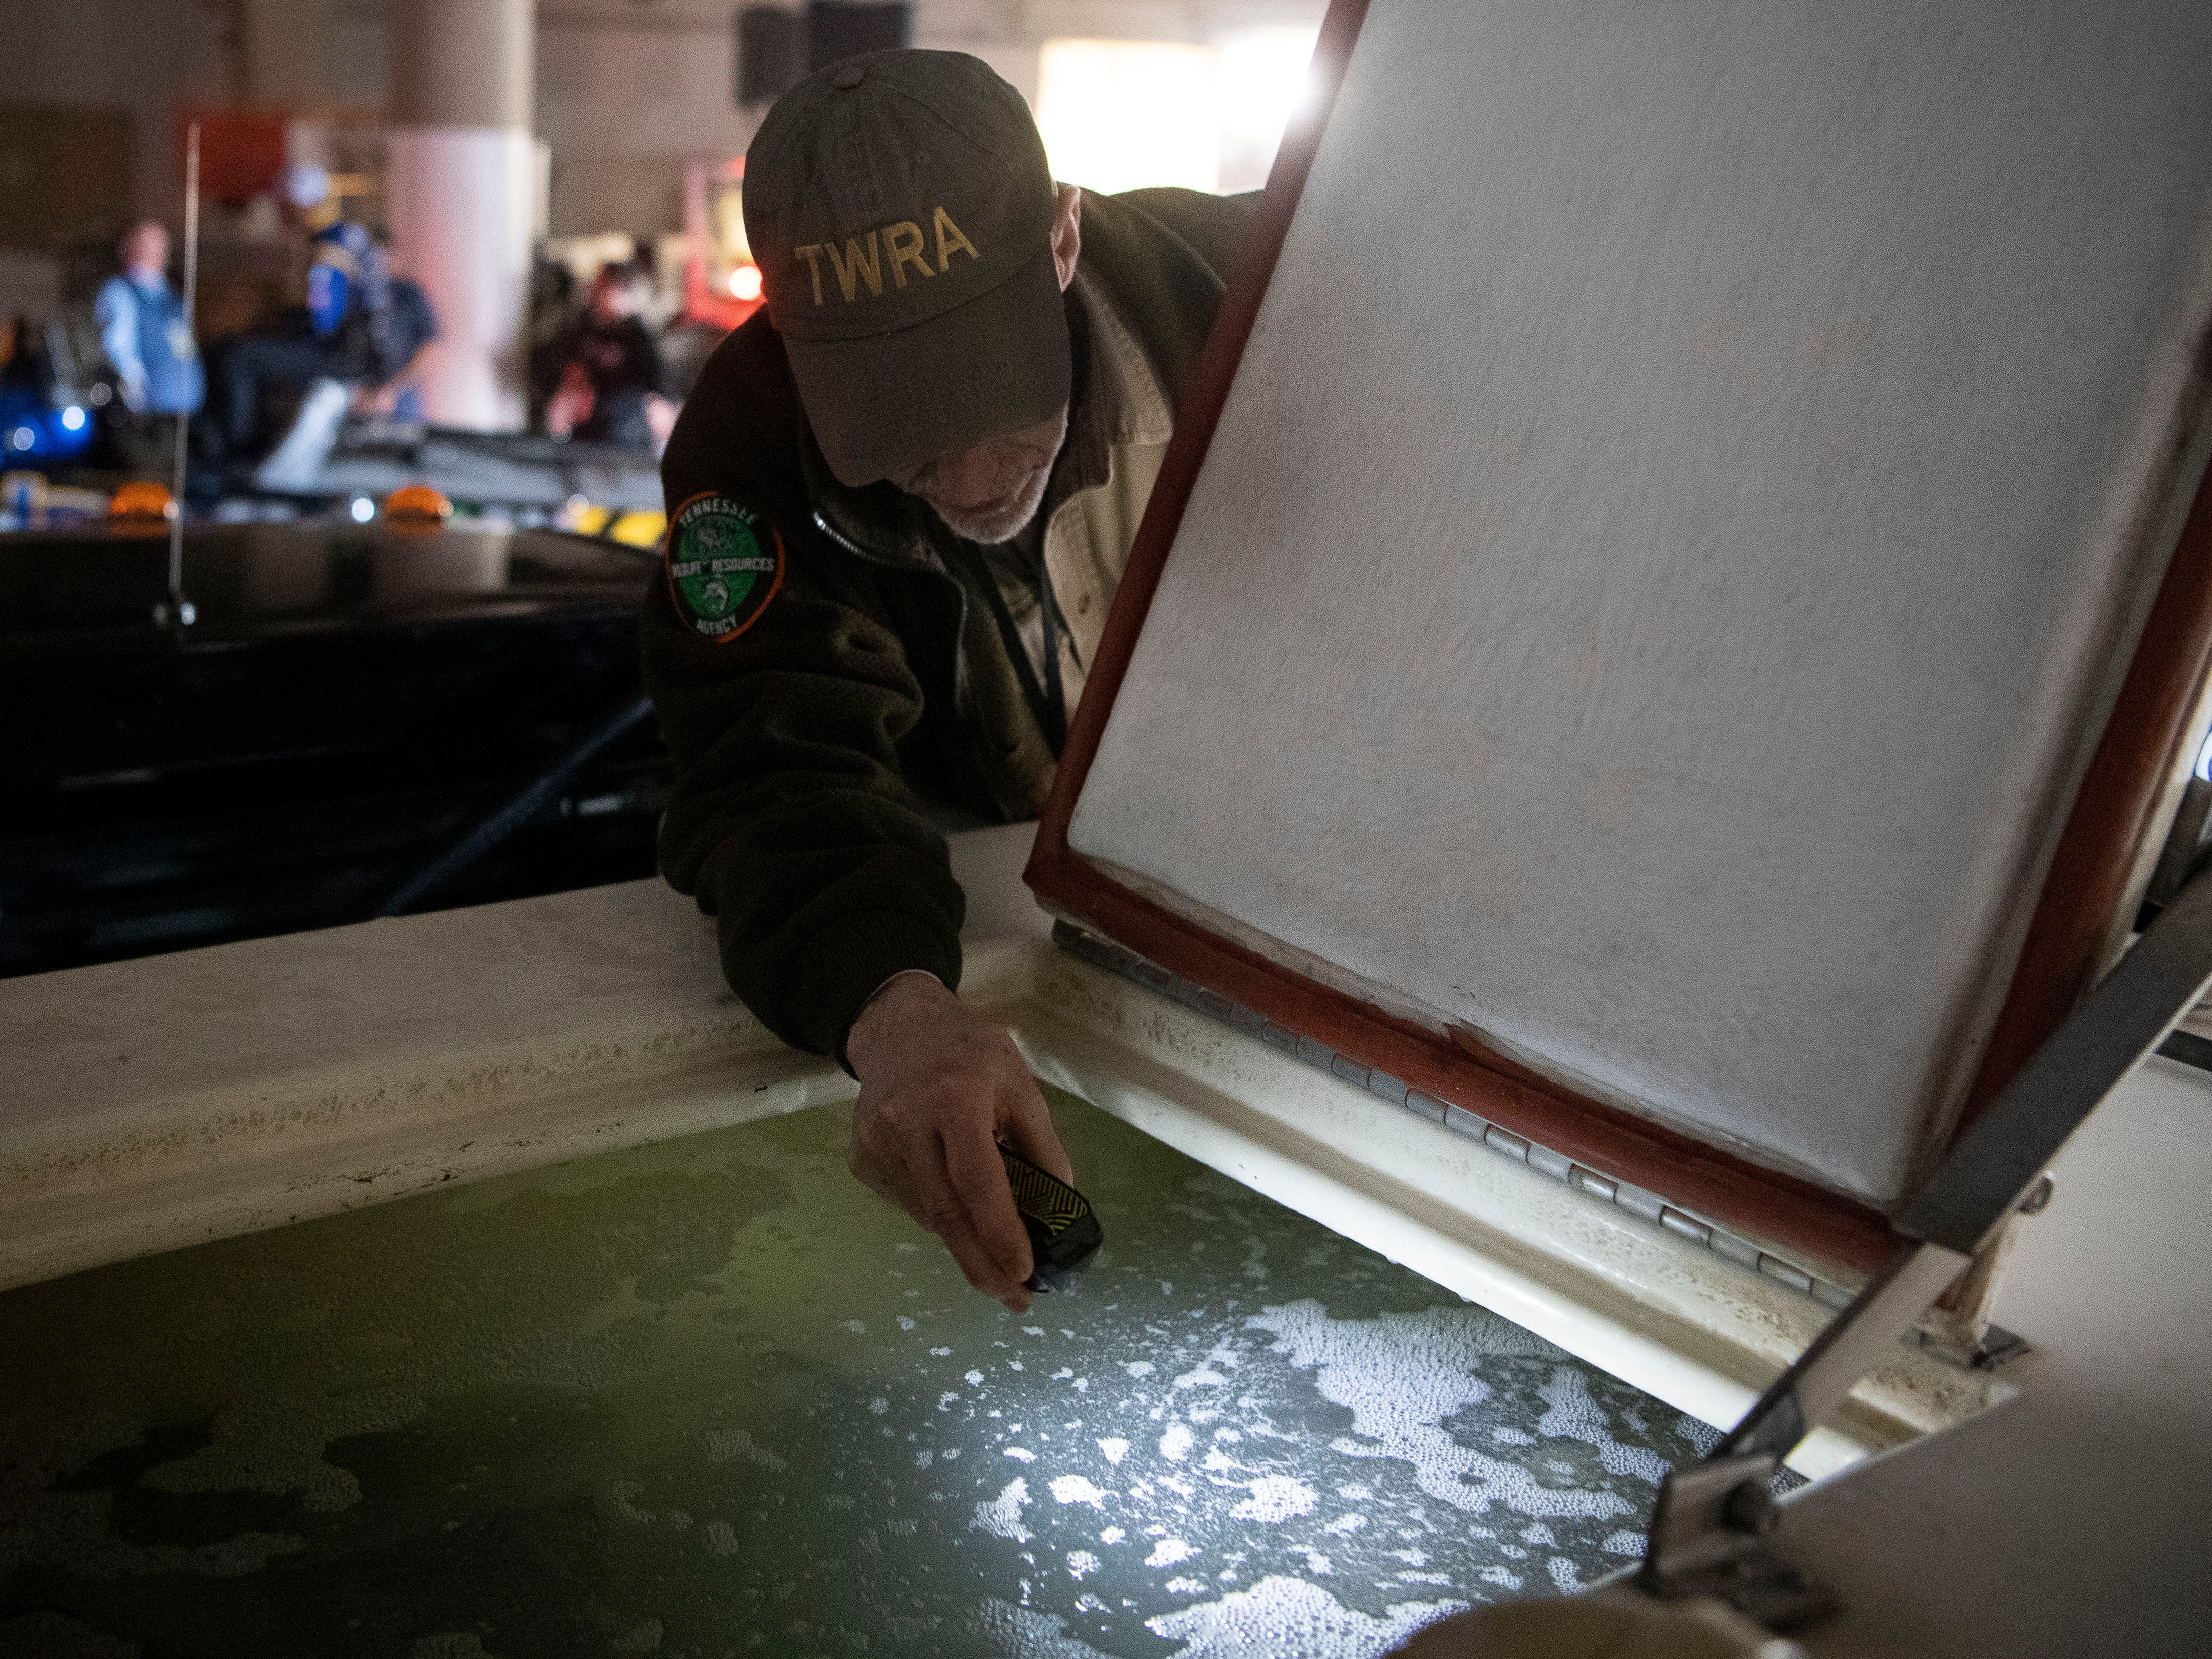 A Tennessee Wildlife Resources Agency technician monitors the water quality where the bass are held after they are weighed in at the Bassmaster Classic on Friday, March 15, 2019. The bass are released back into Fort Loudon Lake at locations TWRA will not reveal.